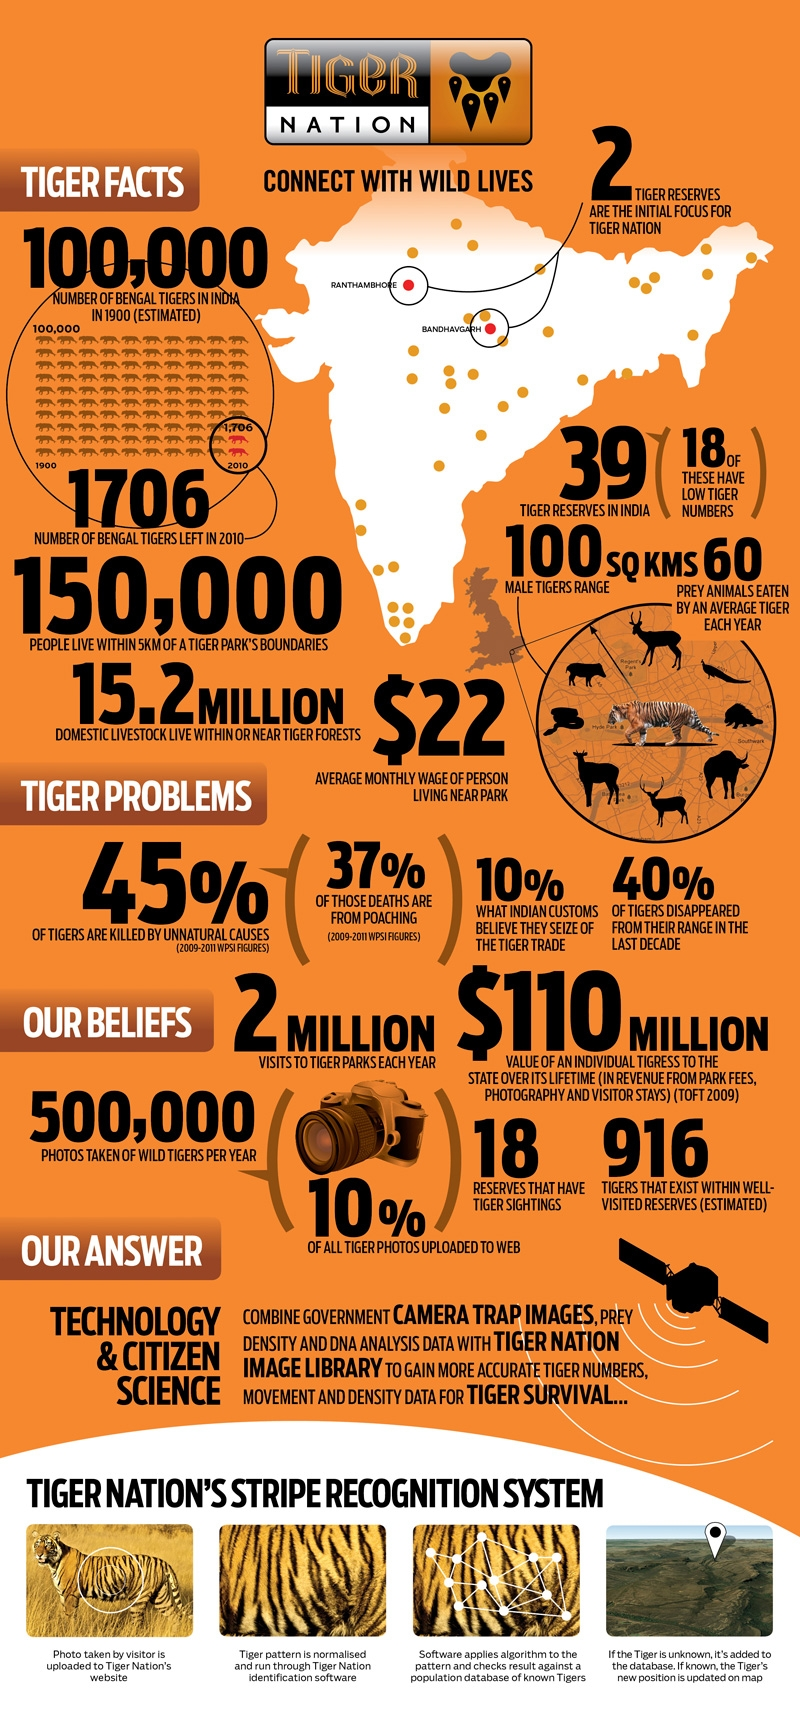 Tiger Facts and Statistics